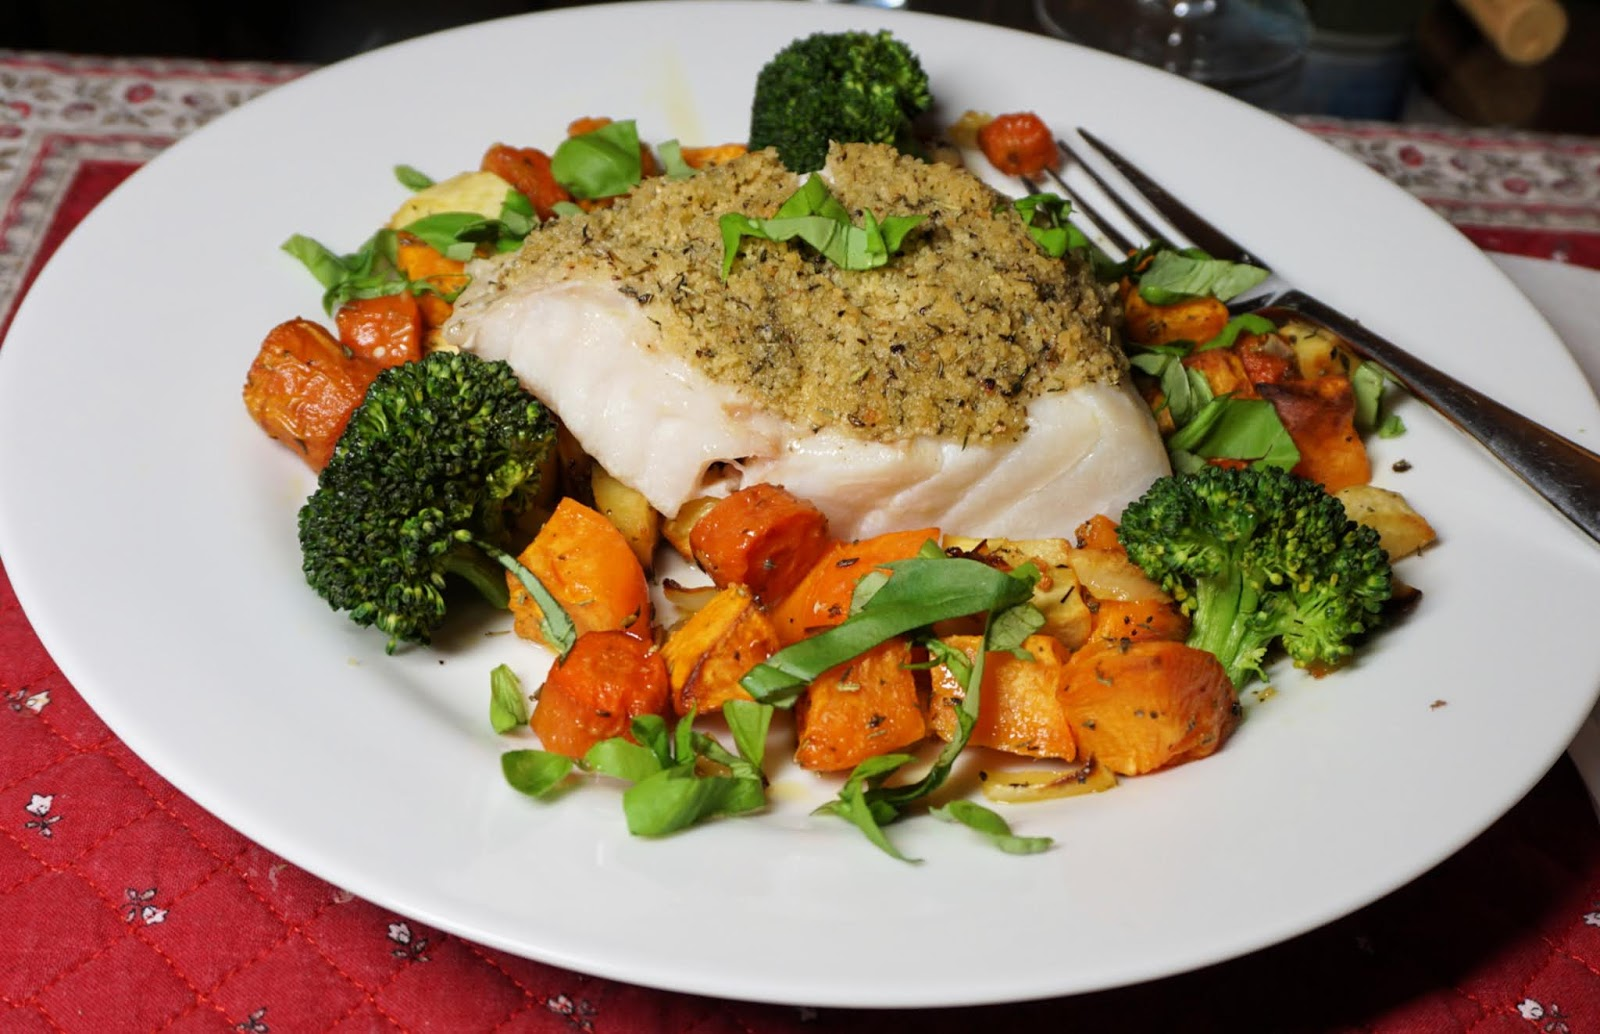 Cod surrounded with roasted vegetables